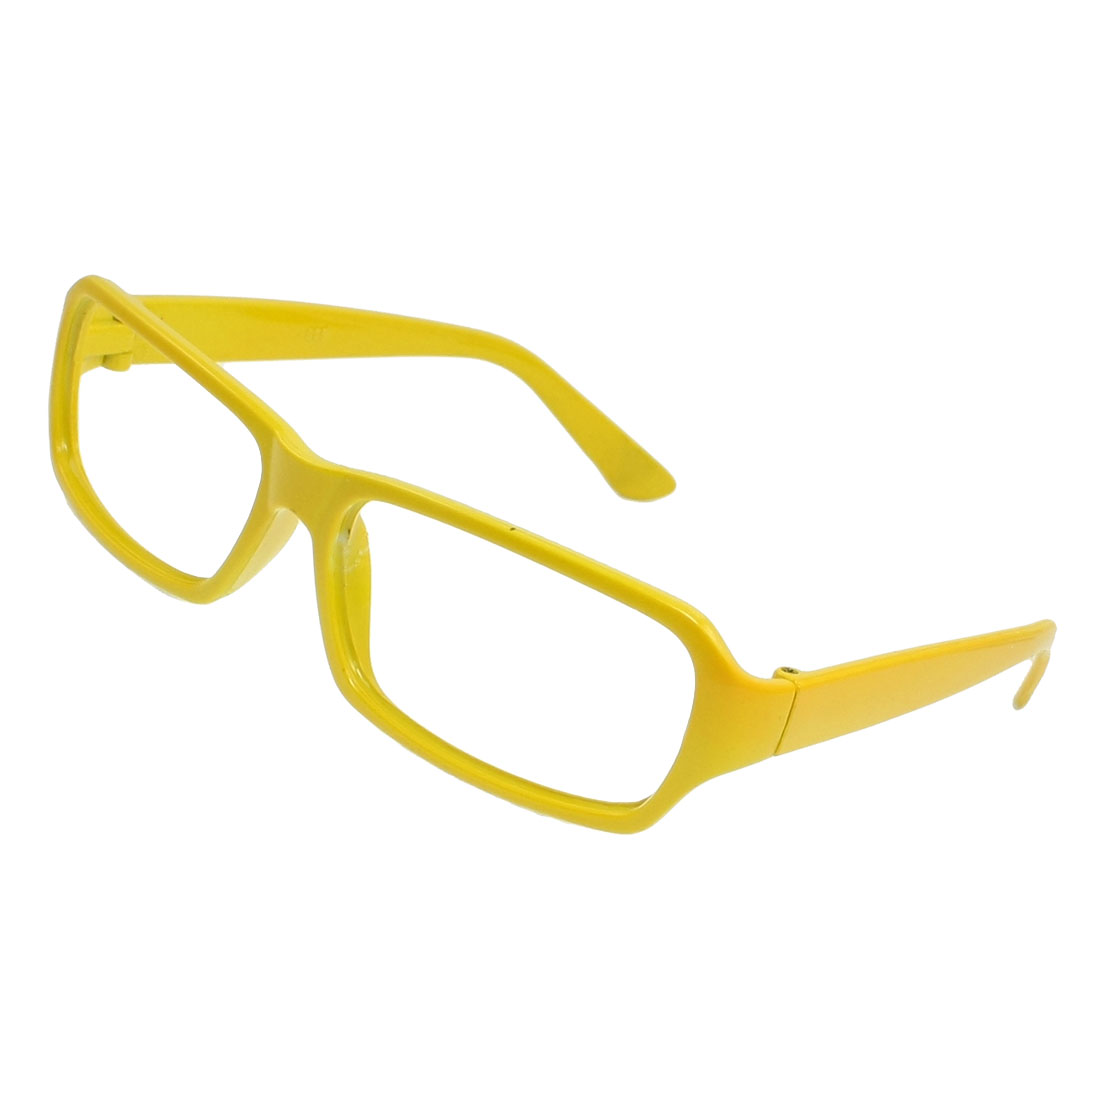 Yellow Plastic No Lens Eyewearing Eyeglasses Frame for Girls